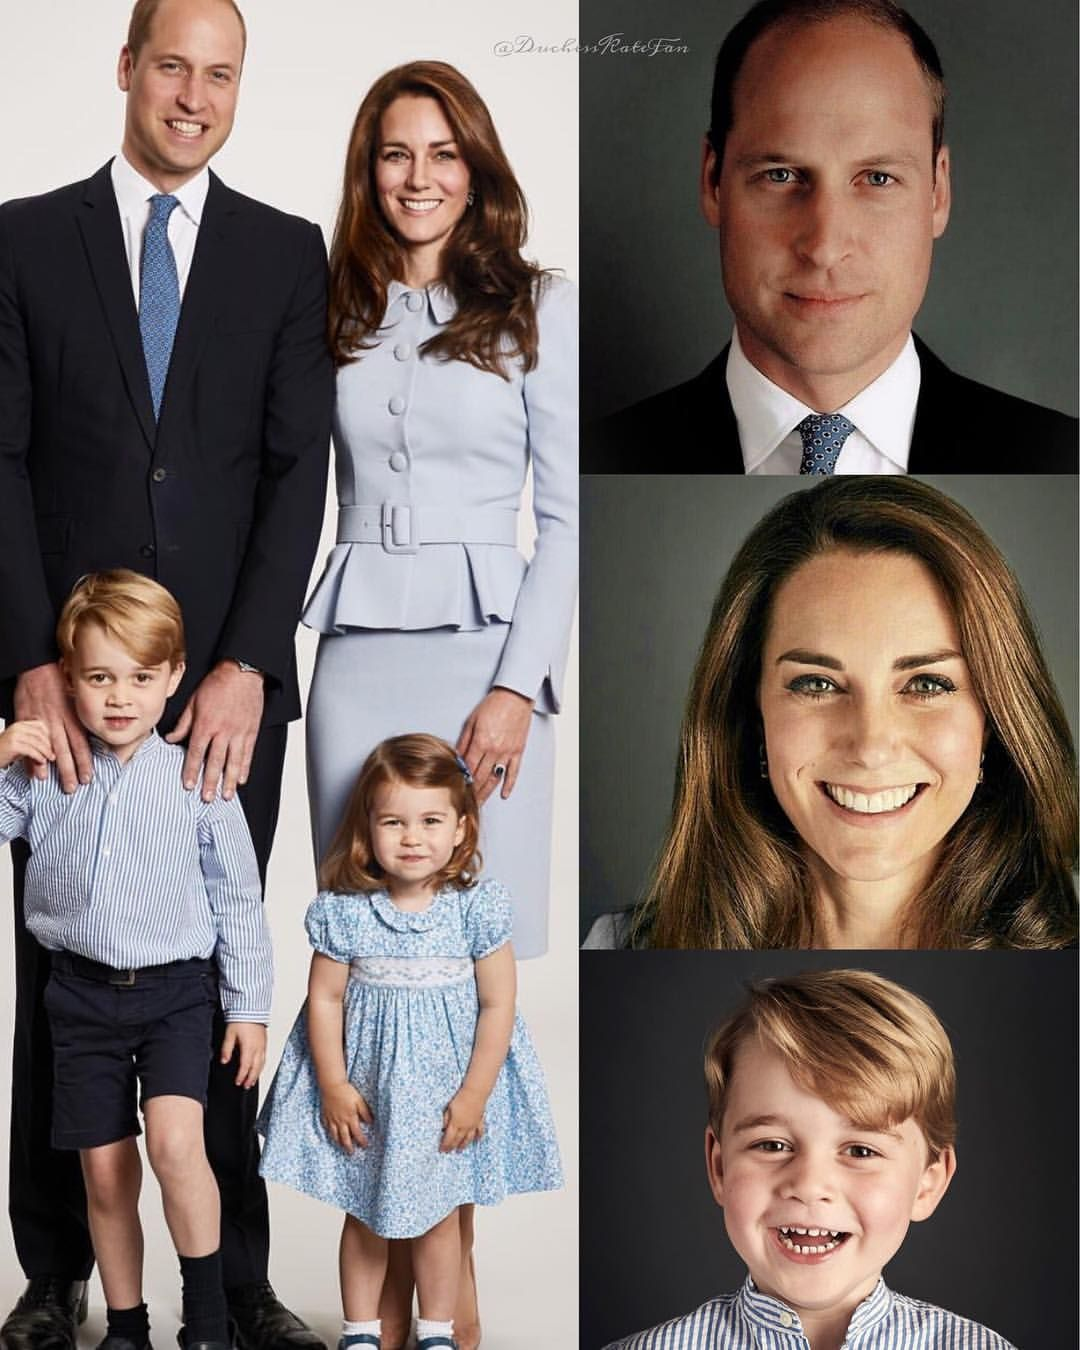 likes comments duchess kate fansite